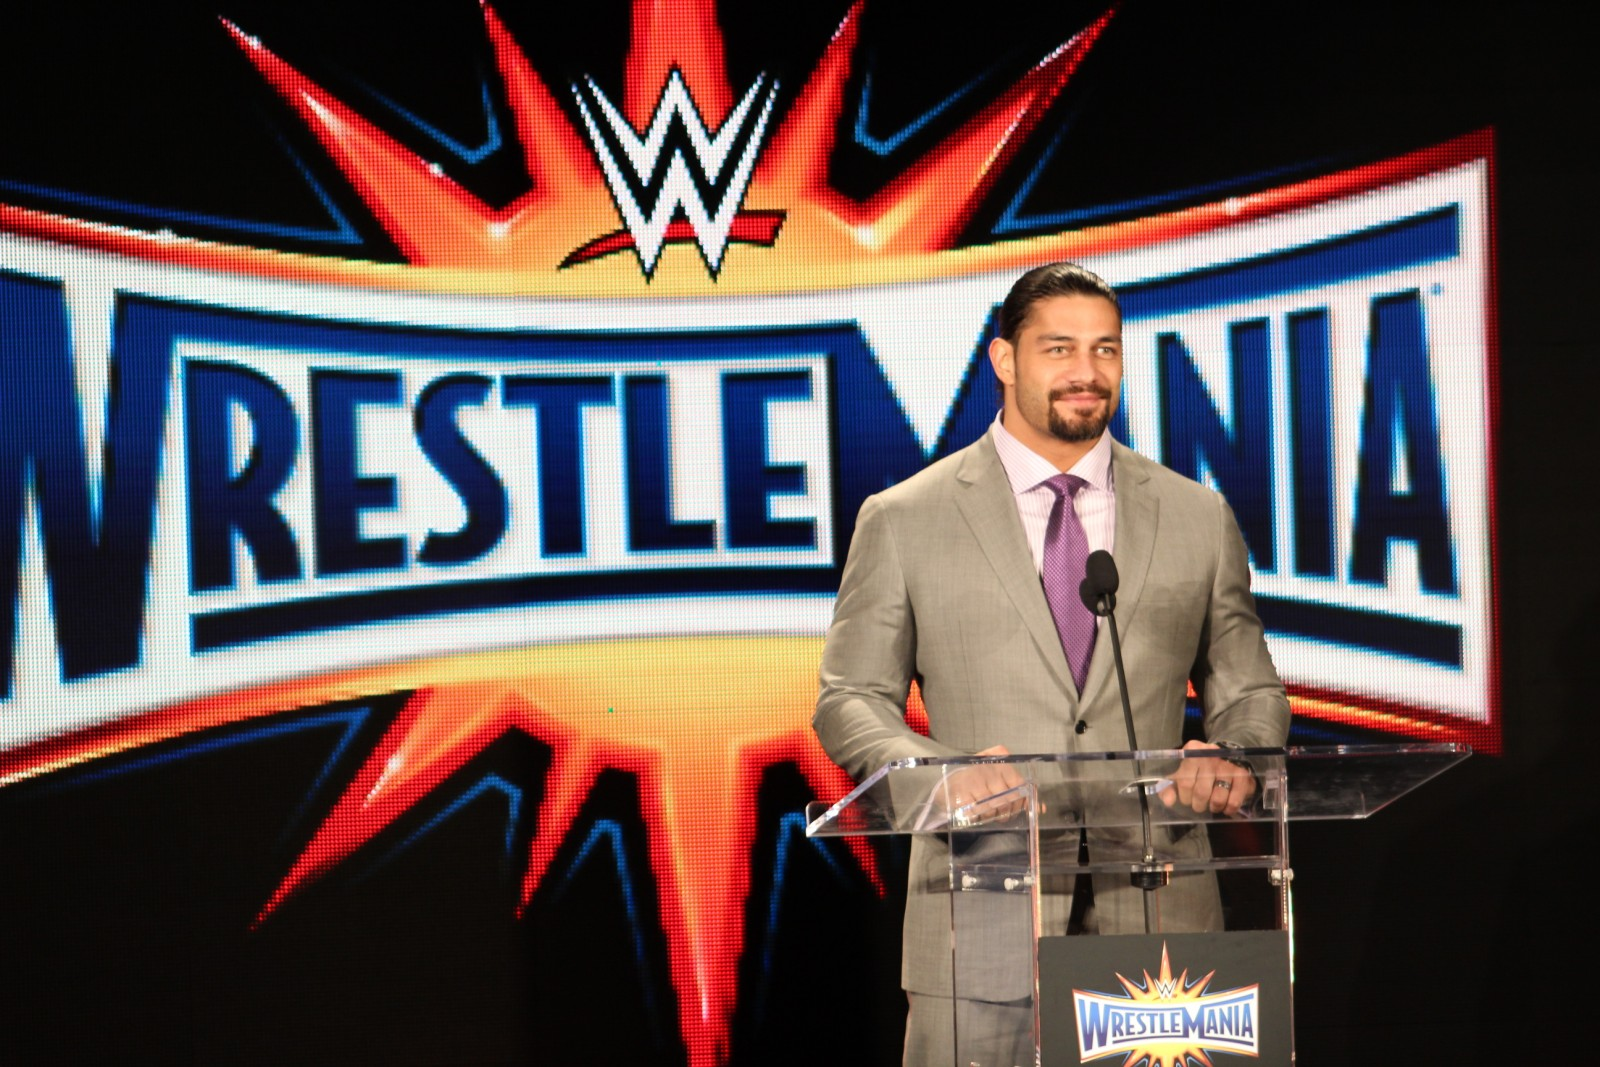 WrestleMania 33 Announcement Orlando Citrus Bowl